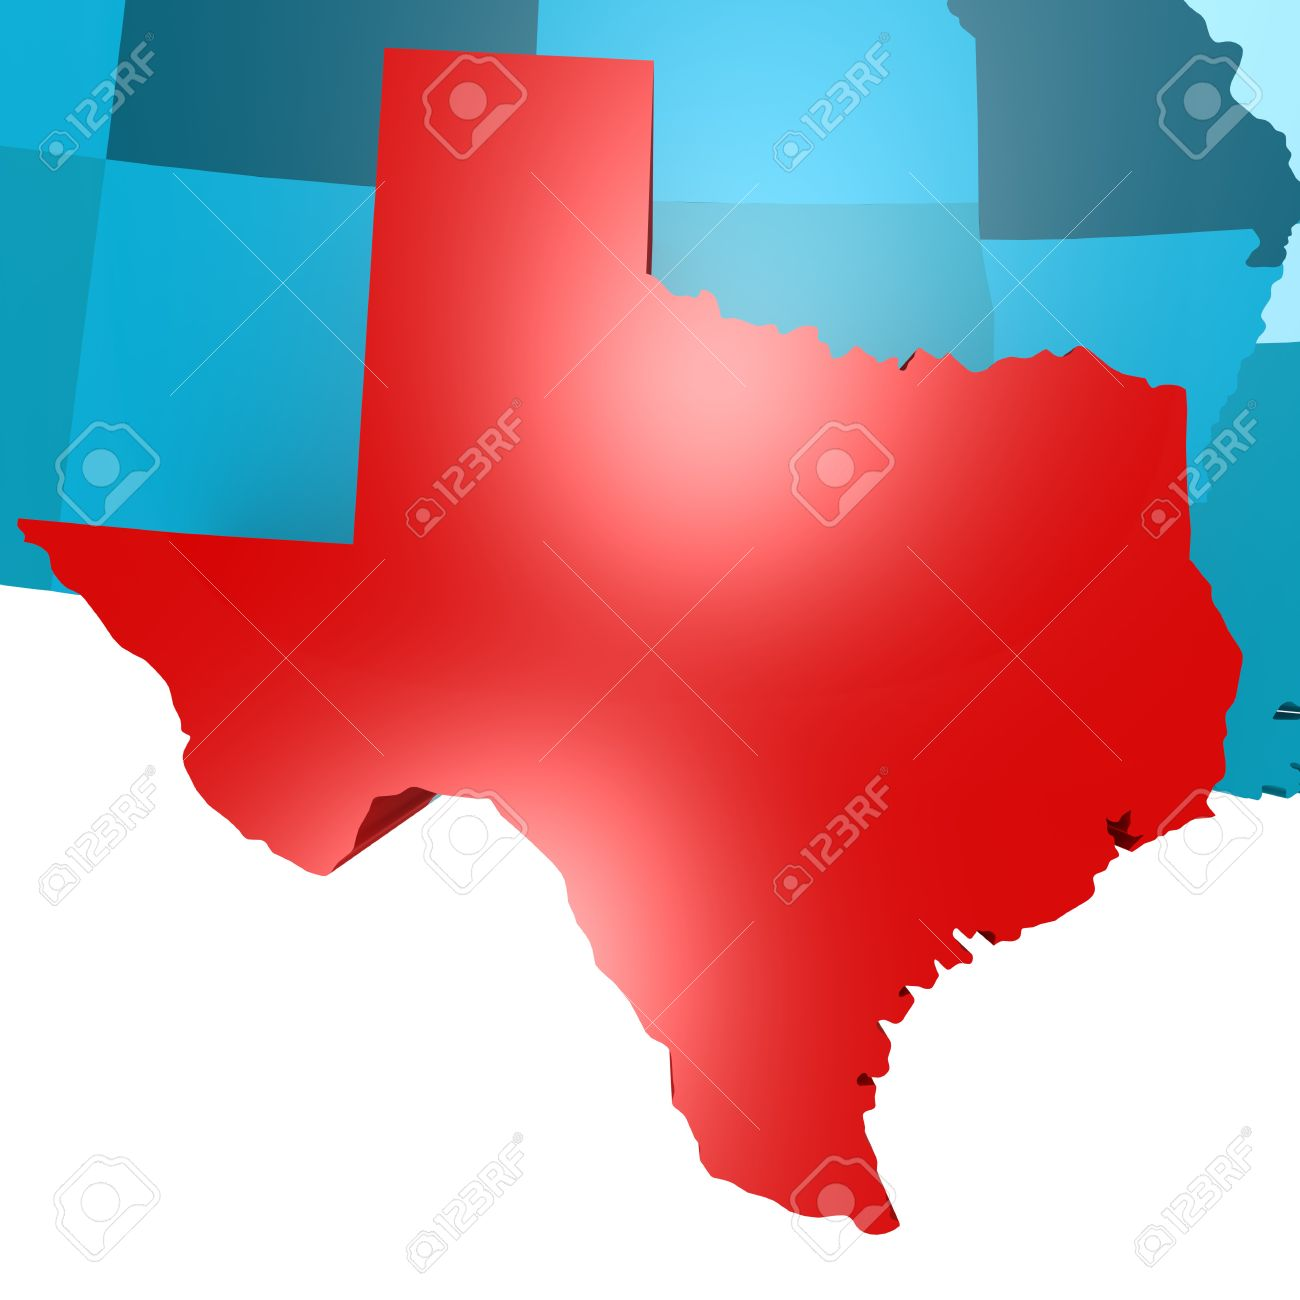 Texas Map On Blue USA Map Image With Hires Rendered Artwork - Texas map usa